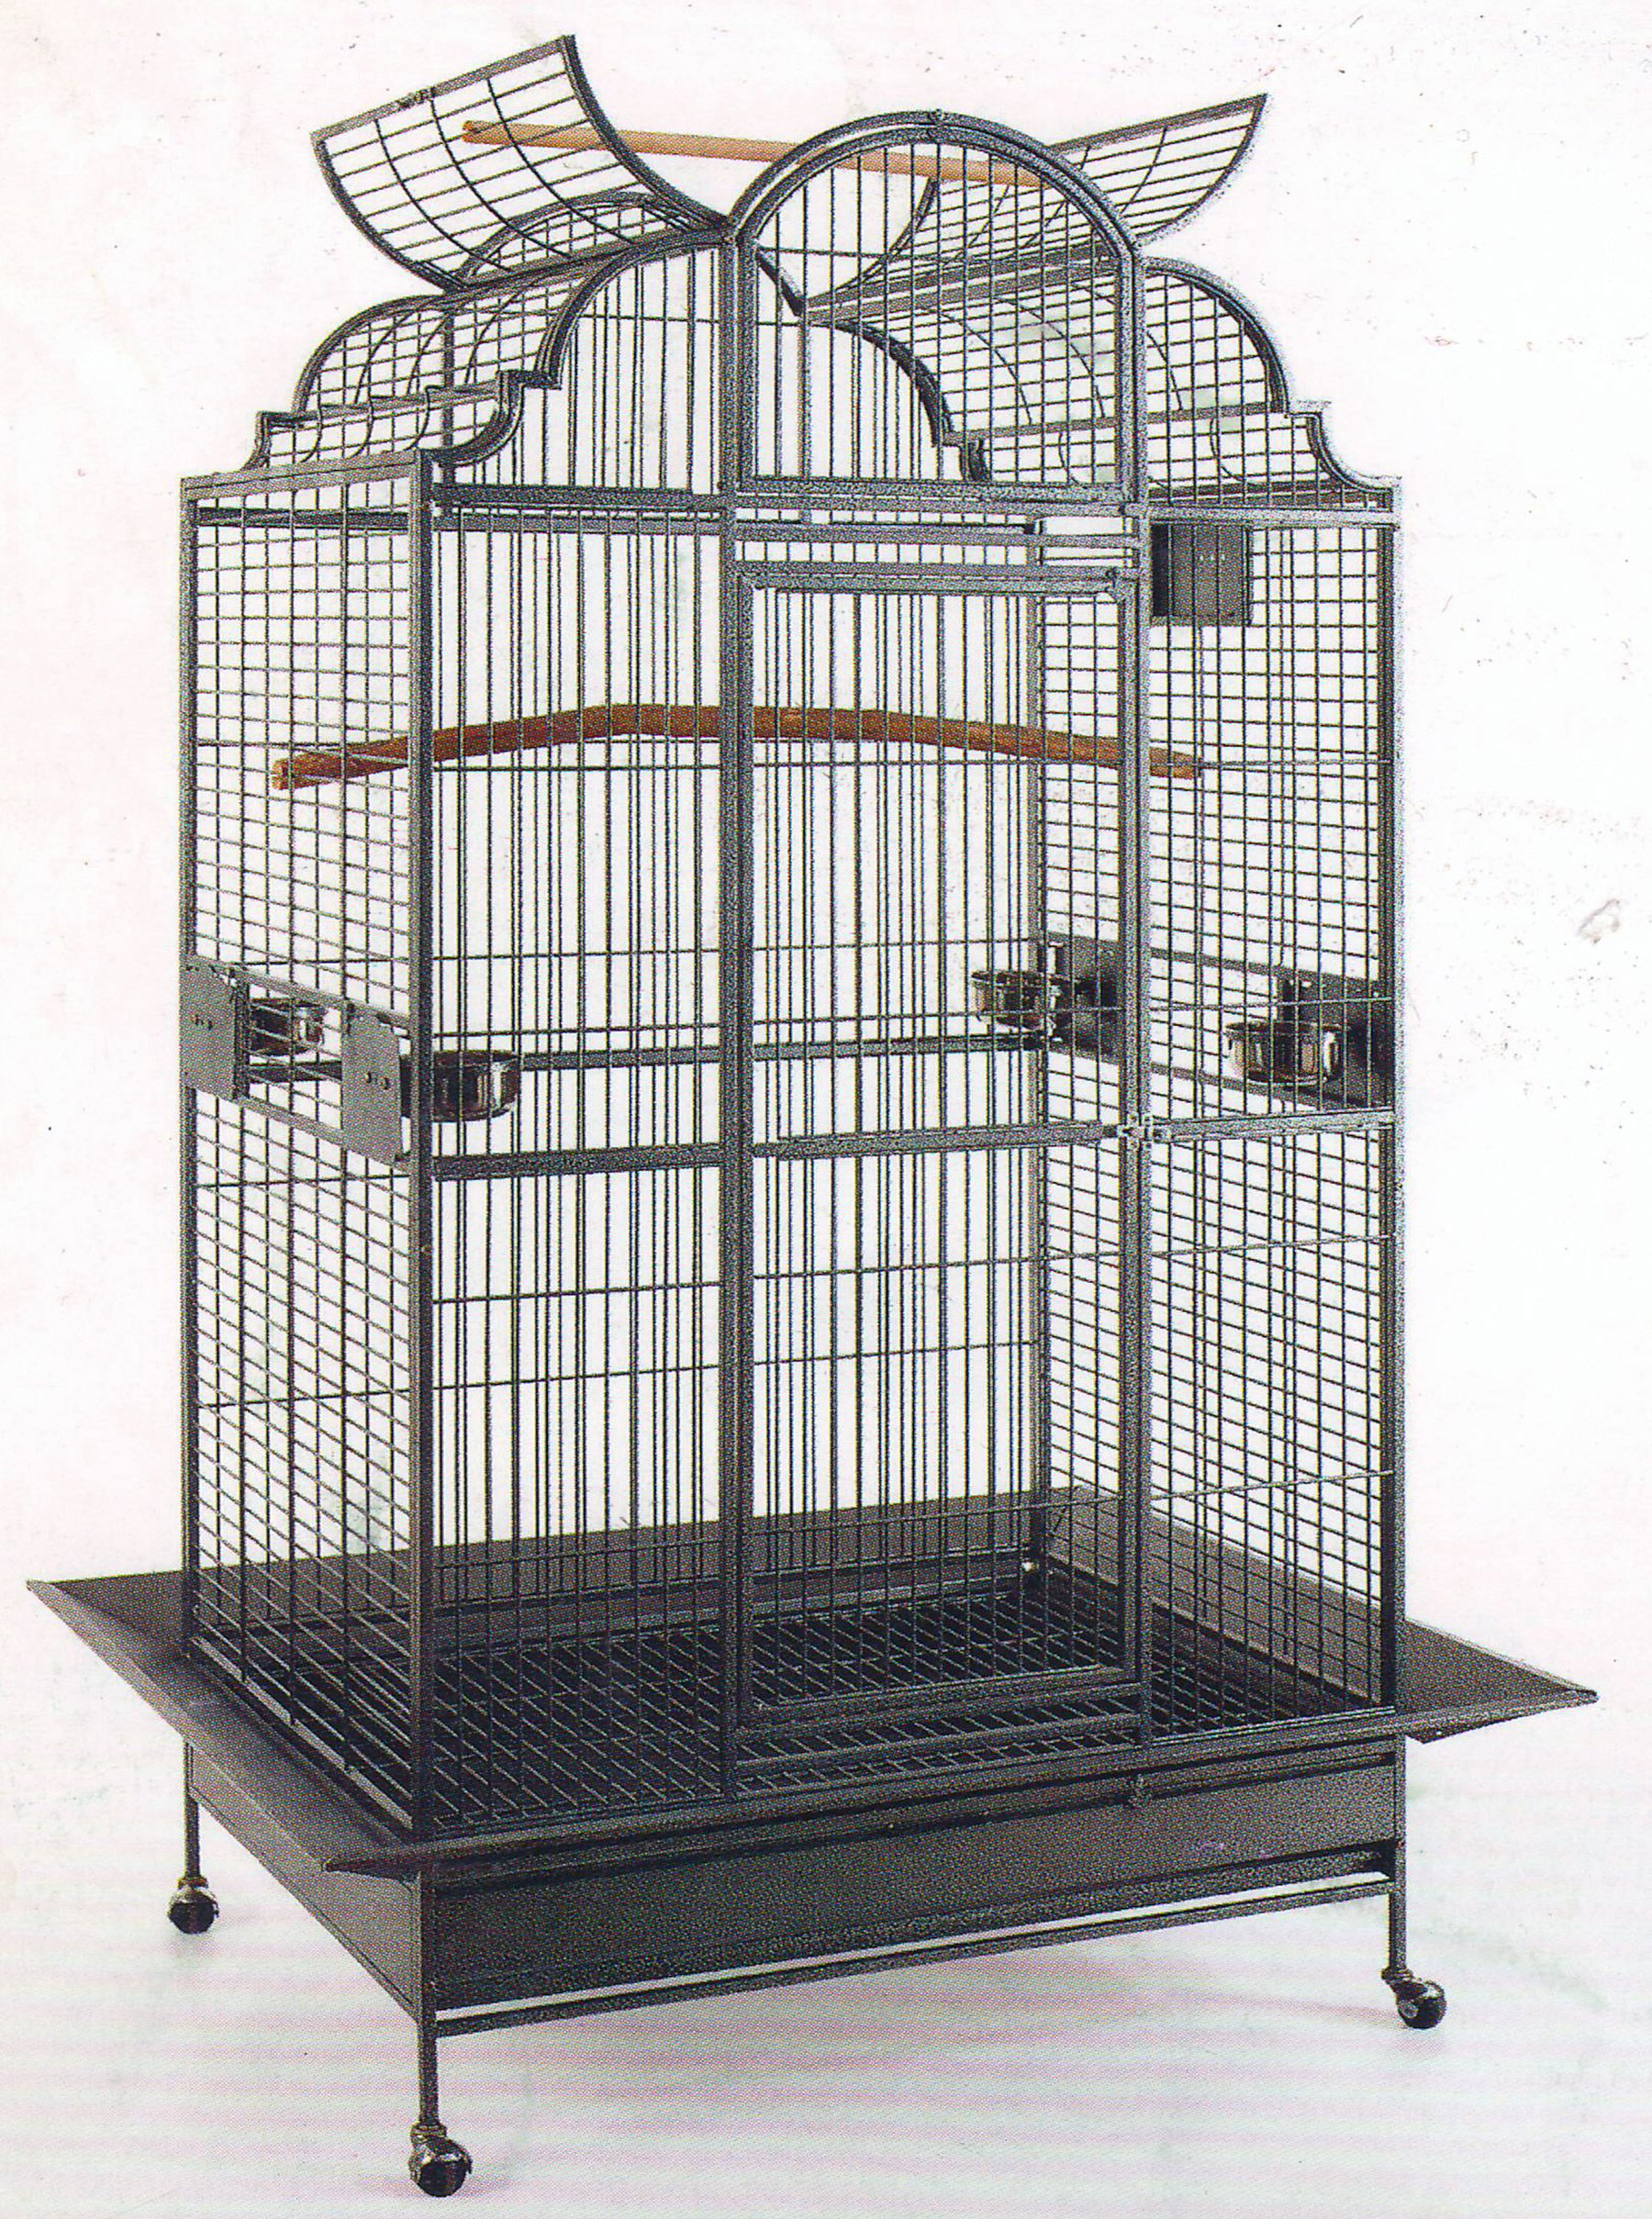 New Extra Large Castle Open Dome PlayTop Parrot Cage - 32'' W x 23'' L x 69'' H for Large Bird Macaws Cockatoos African Grey Amazon by Mcage